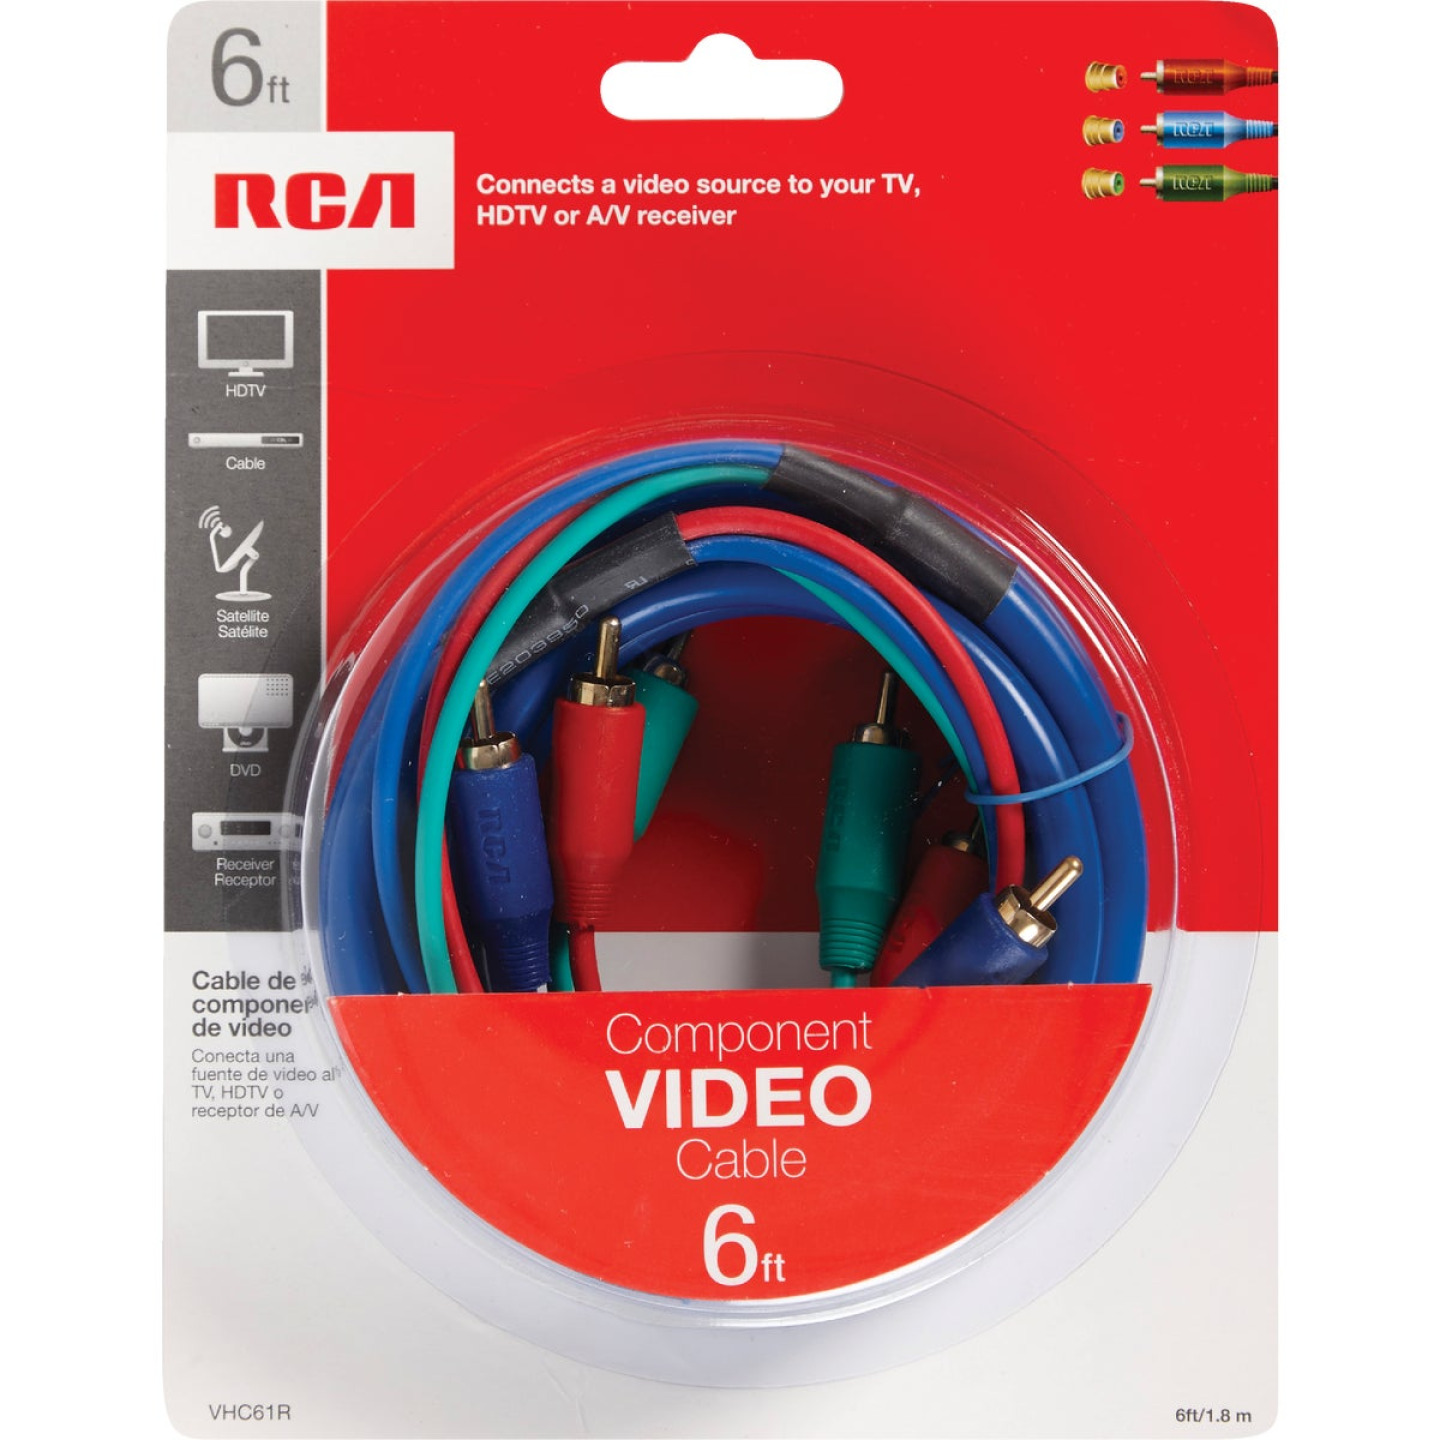 RCA 6 Ft. Computer Component Video Cable Image 2